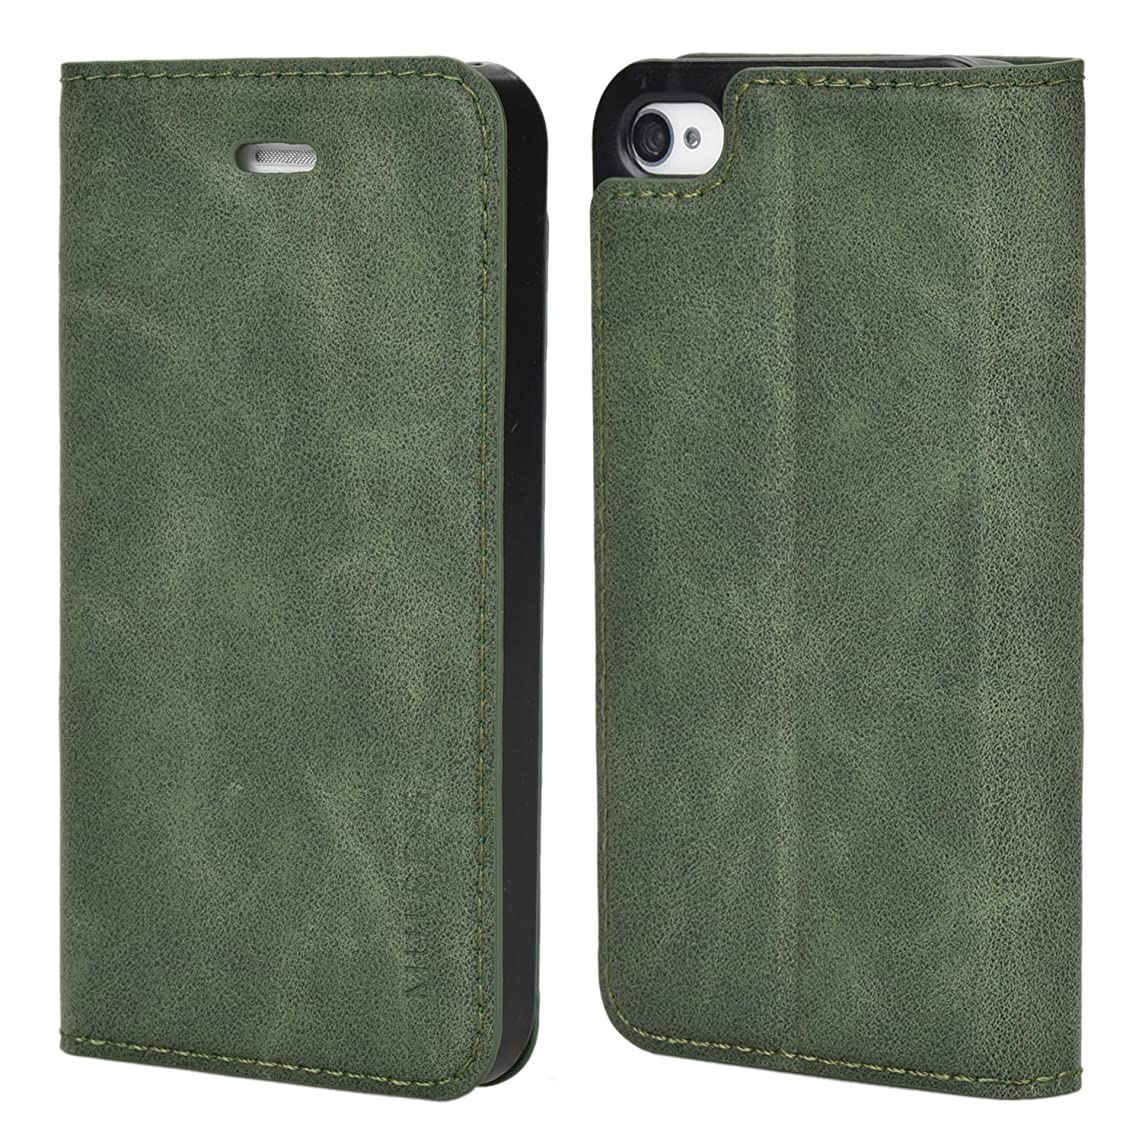 iPhone 4s Case,Mulbess PU Leather Wallet Case with Kick Stand for Apple iPhone 4 / 4s,Green